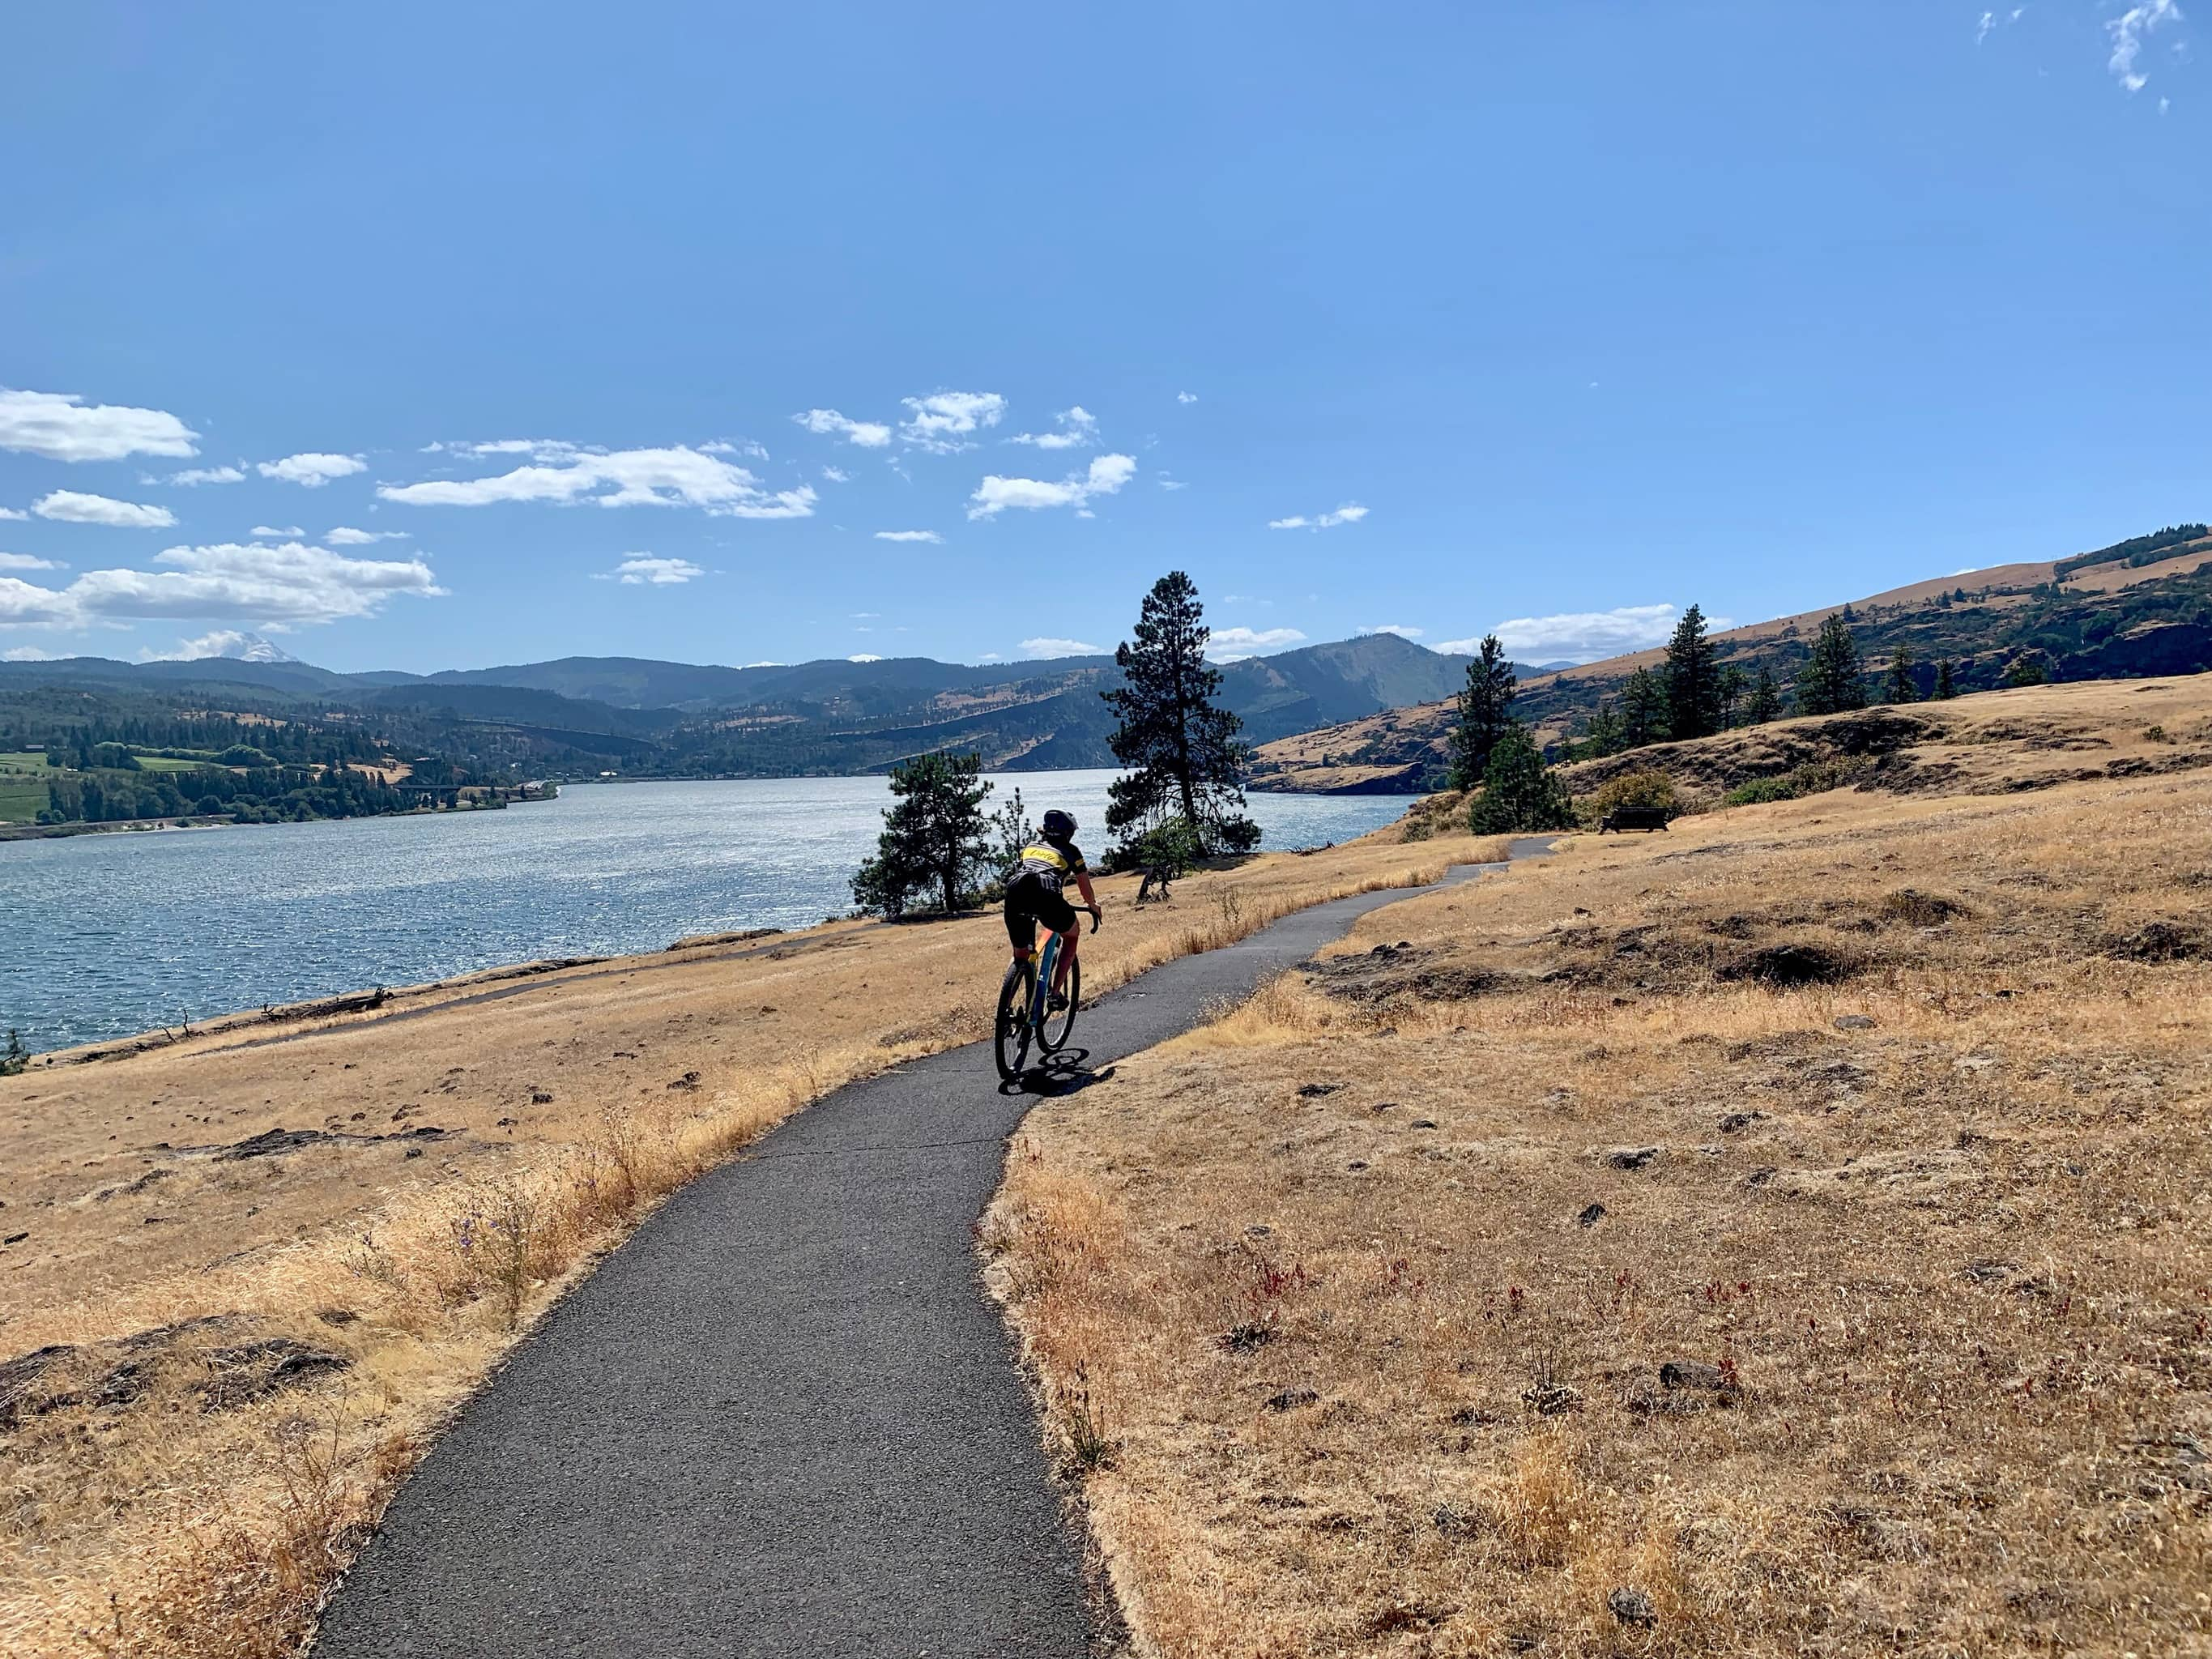 Cyclist riding the paved Catherine Creek trails in the Columbia River Gorge National Scenic area.